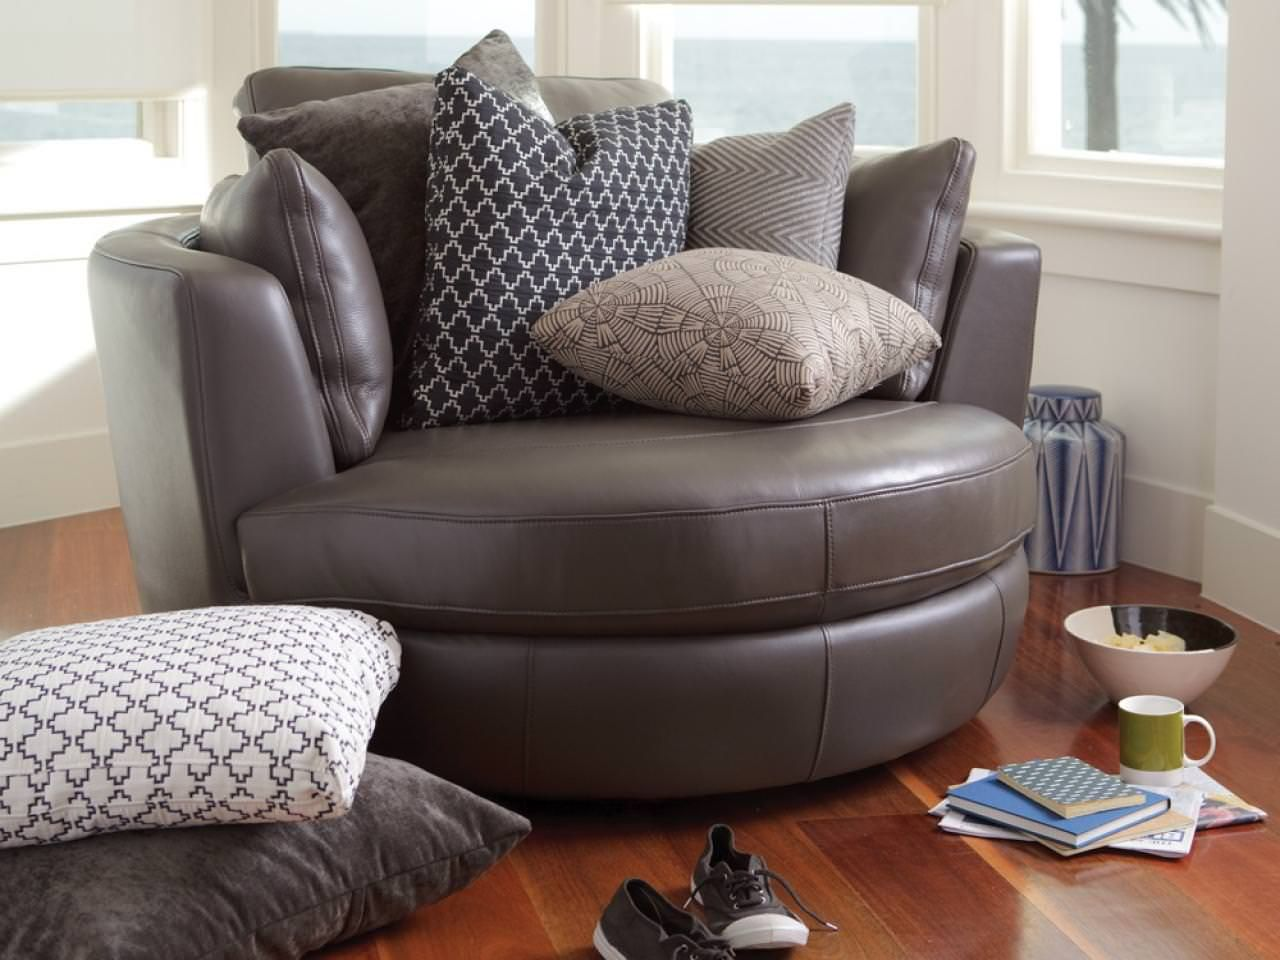 Prime Comfort Of Cuddle Chair With Ottoman Bathroom Leather Lamtechconsult Wood Chair Design Ideas Lamtechconsultcom